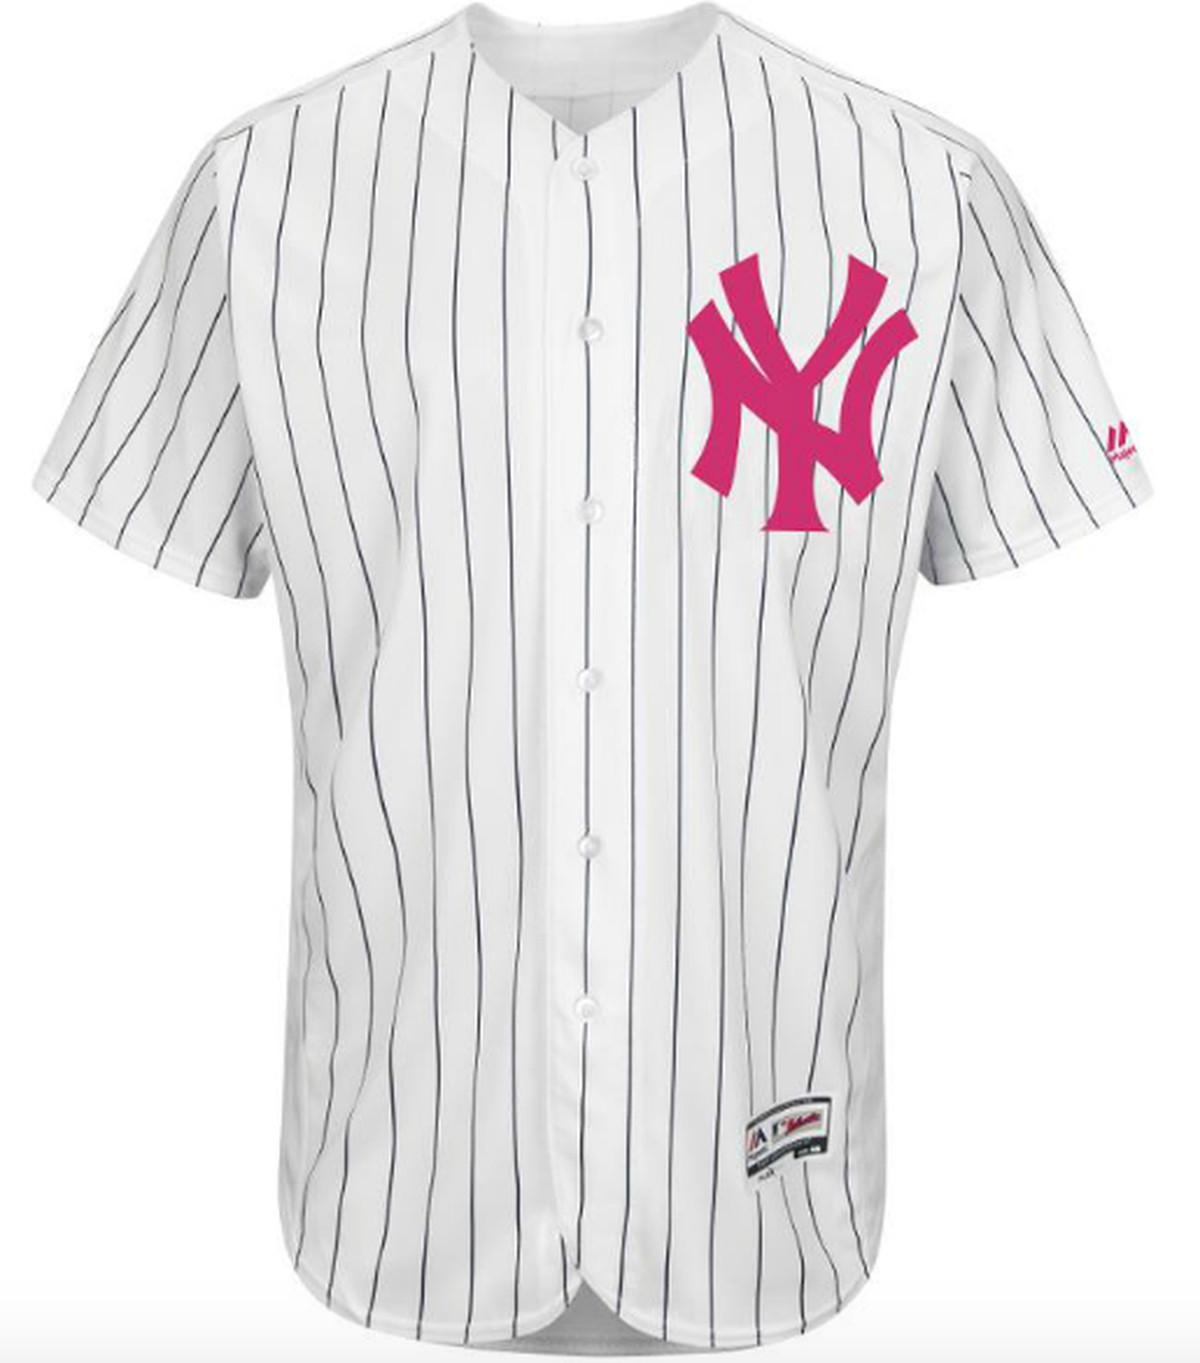 Mlb Releases 2016 Special Event Jerseys And Caps Pinstripe Alley